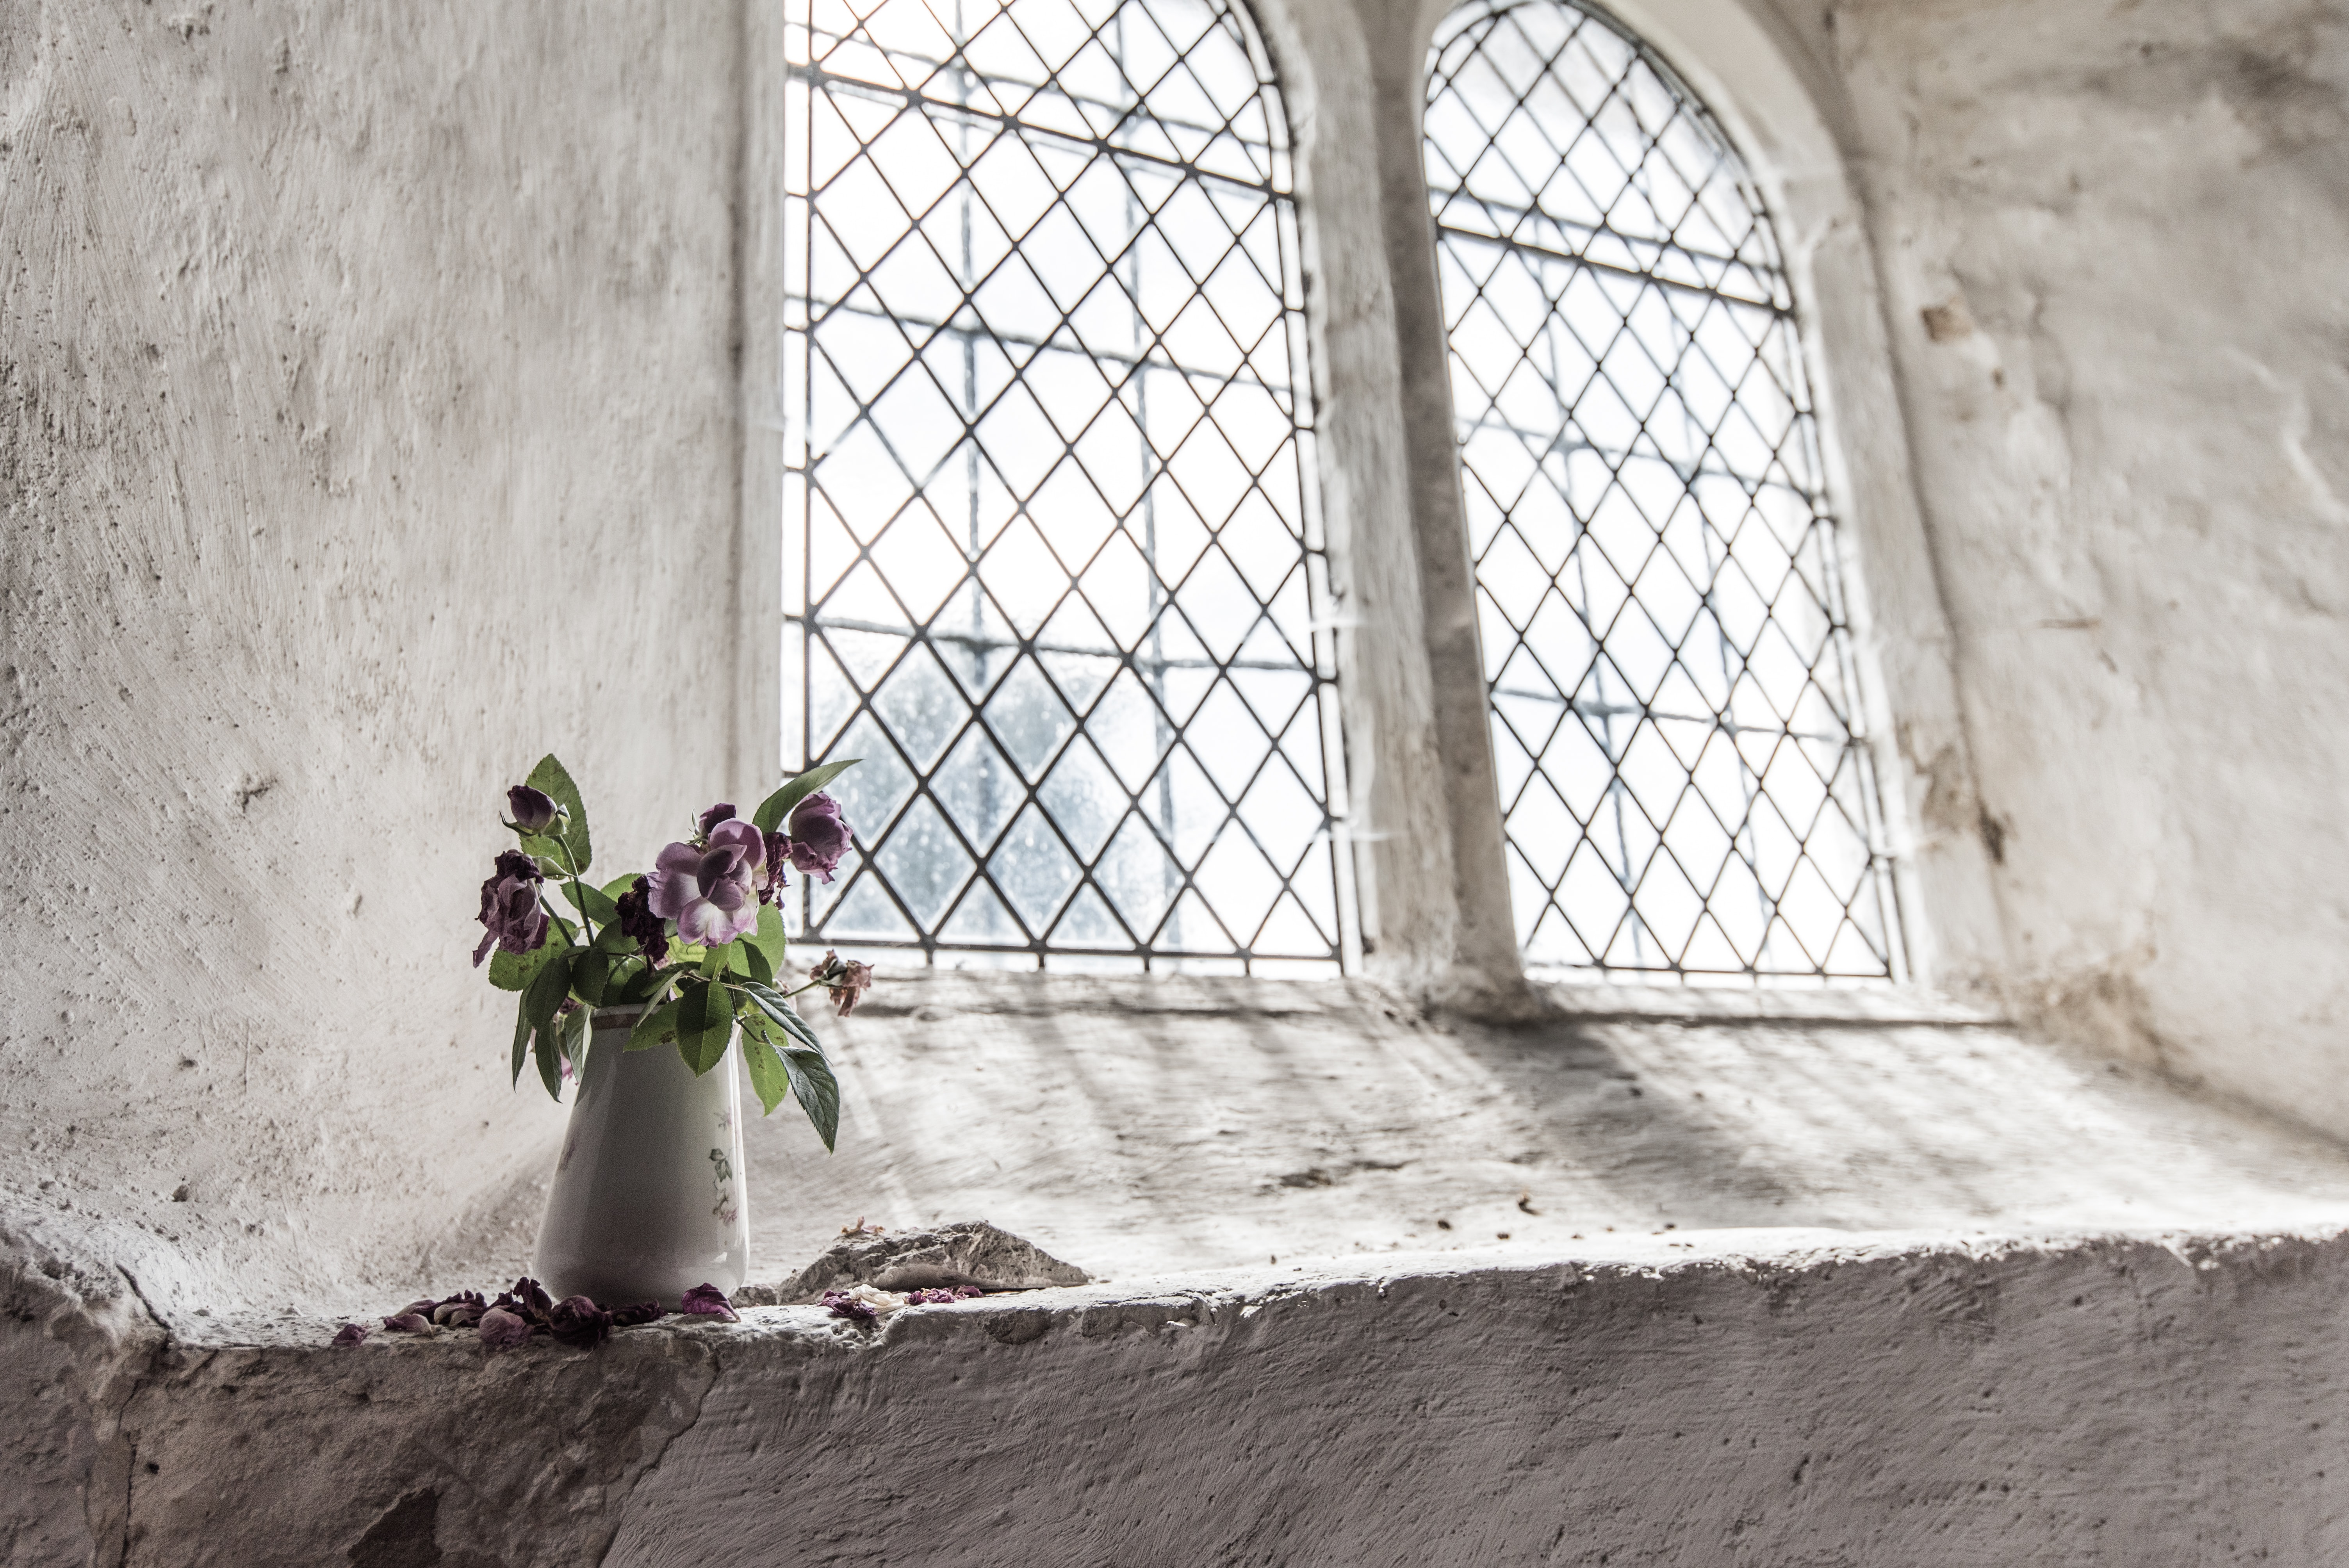 A white vase with purple flowers on a window ledge in an old building